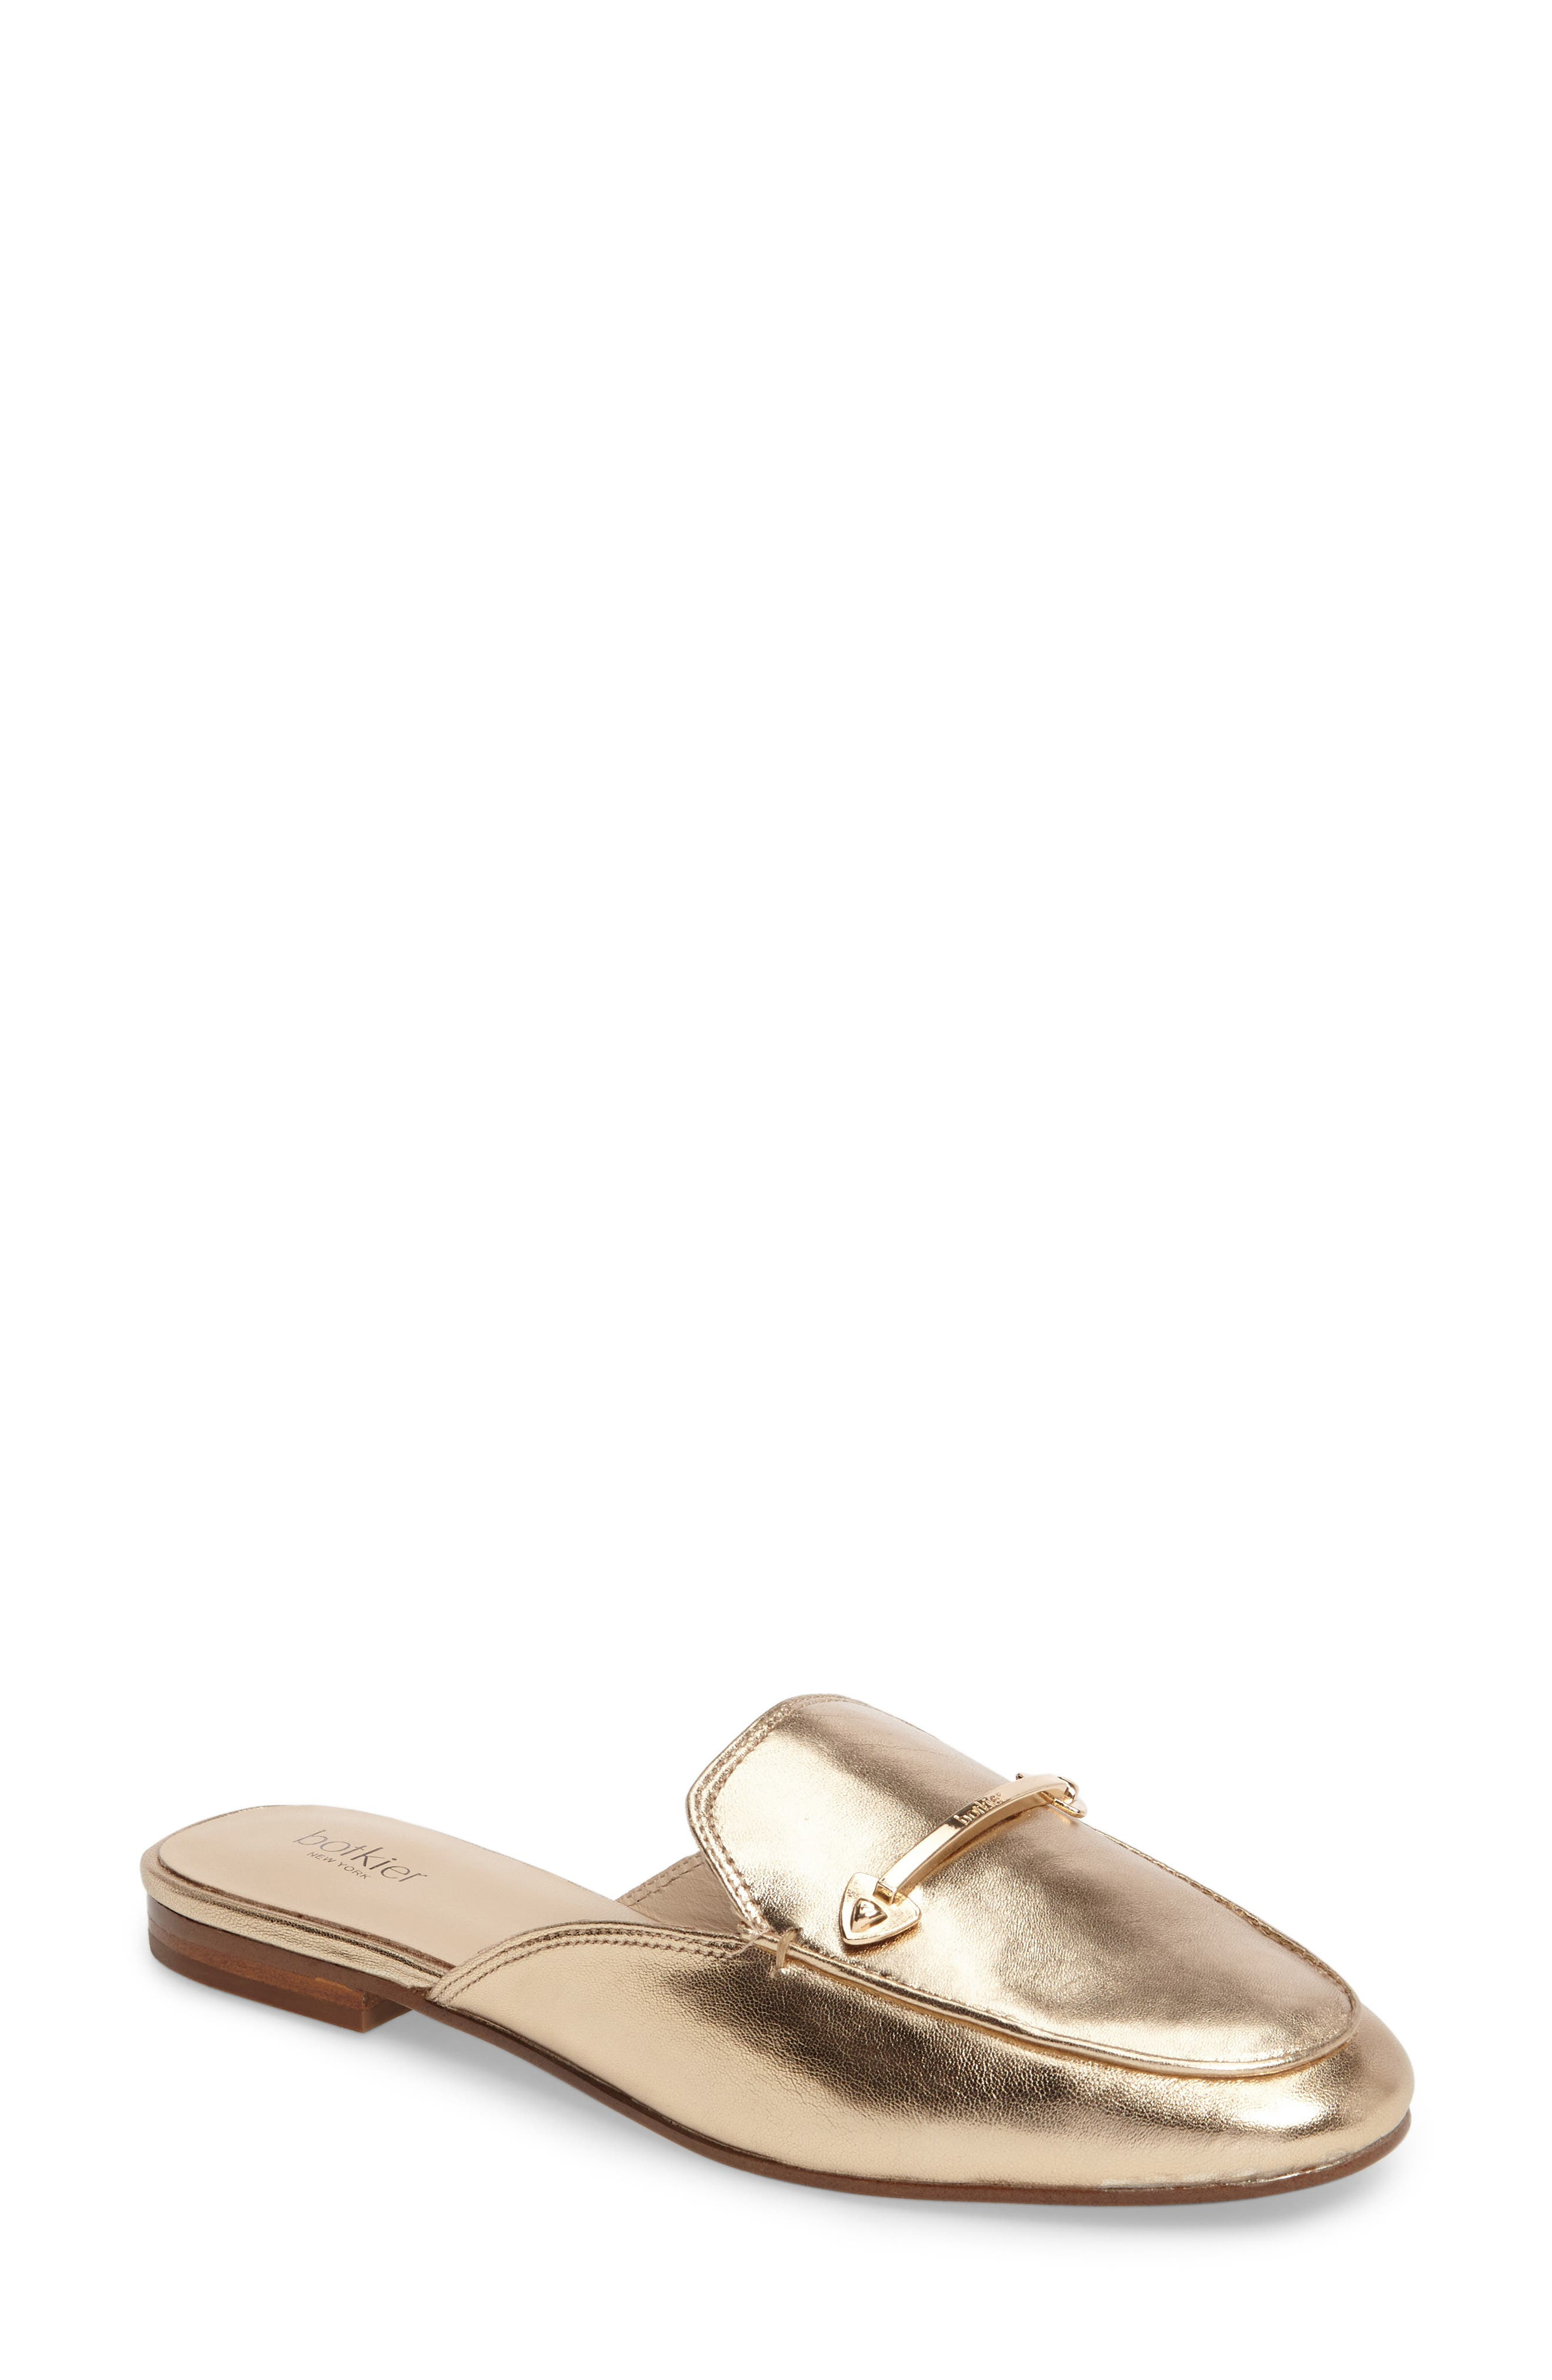 Alternate Image 1 Selected - Botkier Clare Loafer Mule (Women)